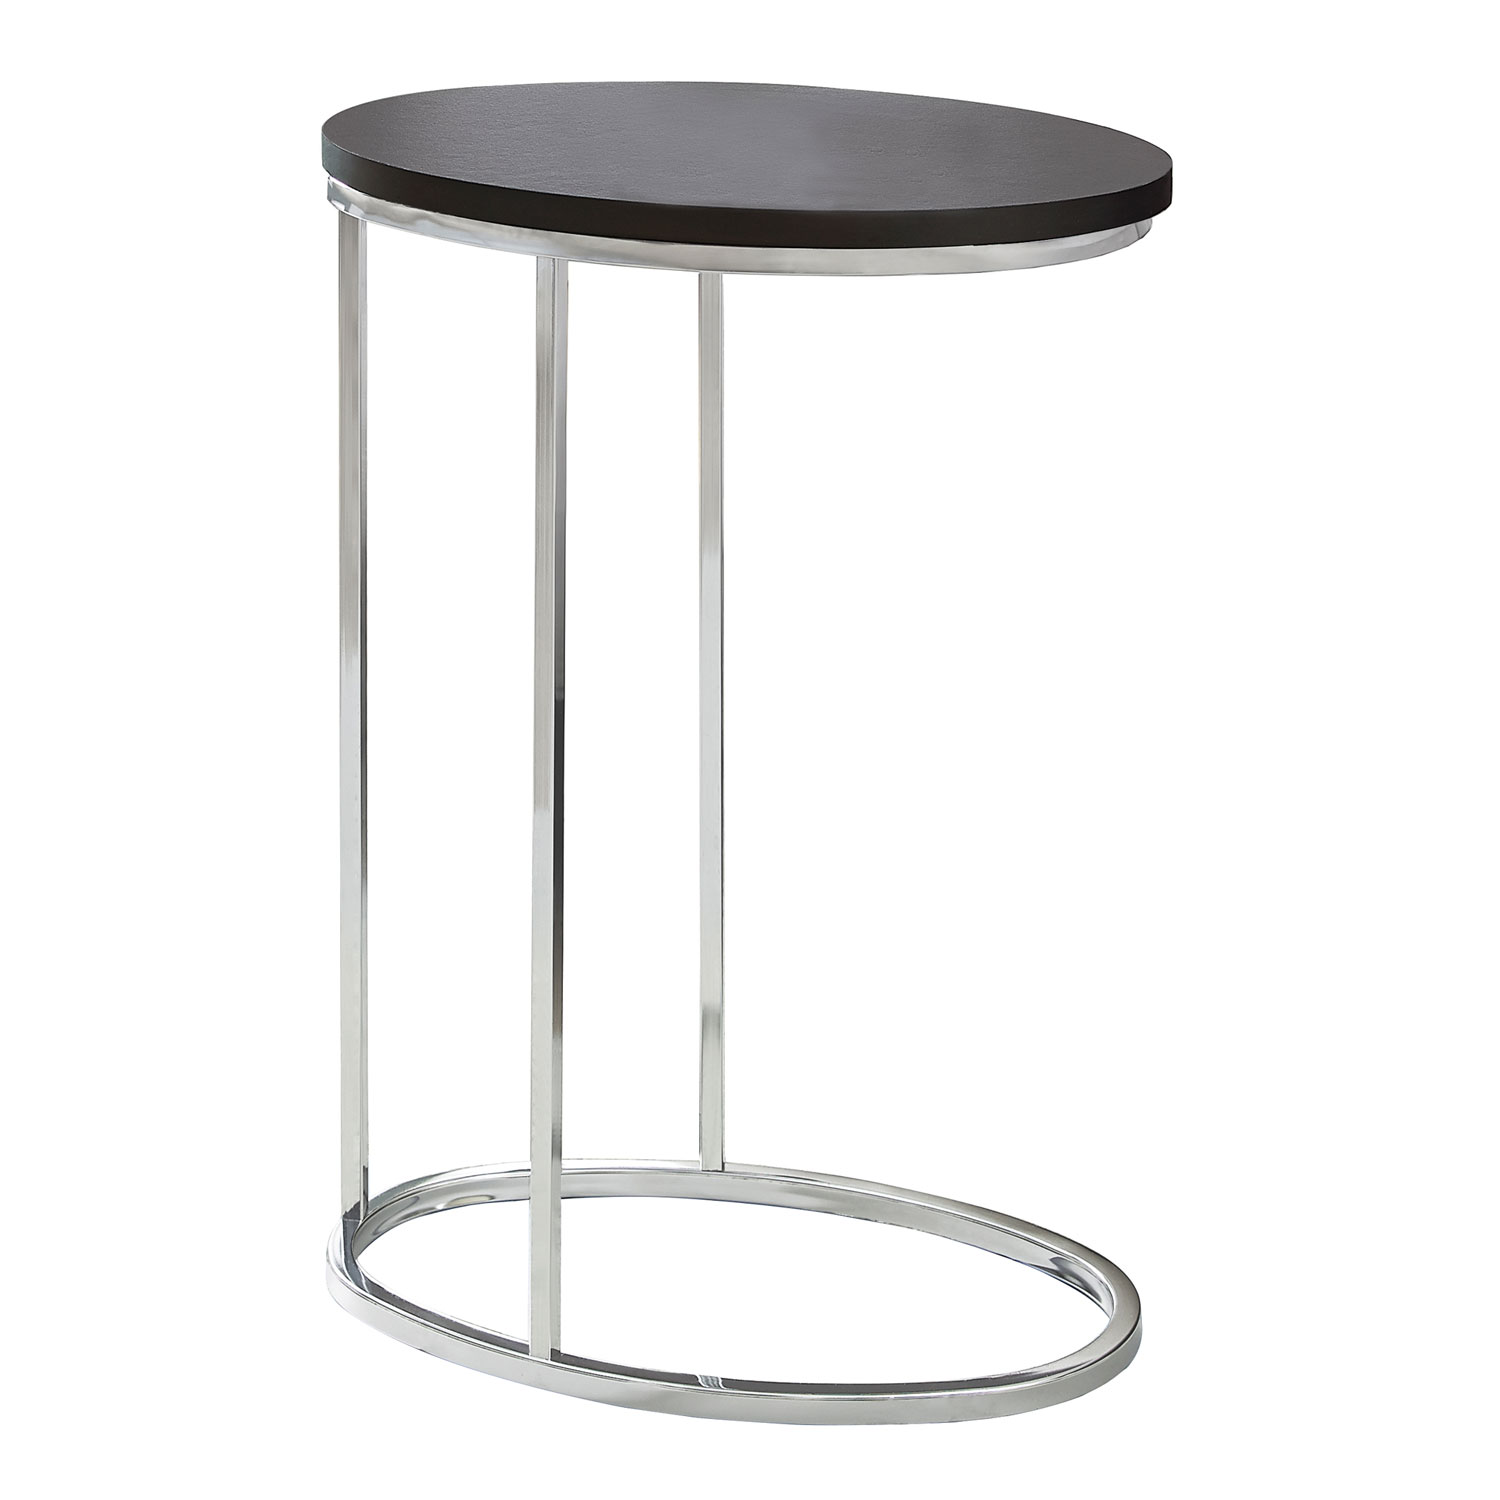 hawthorne ave accent table oval cappuccino with chrome metal glass top bronze hover zoom white wood small uttermost lamps inch wooden legs hairpin threshold fretwork industrial